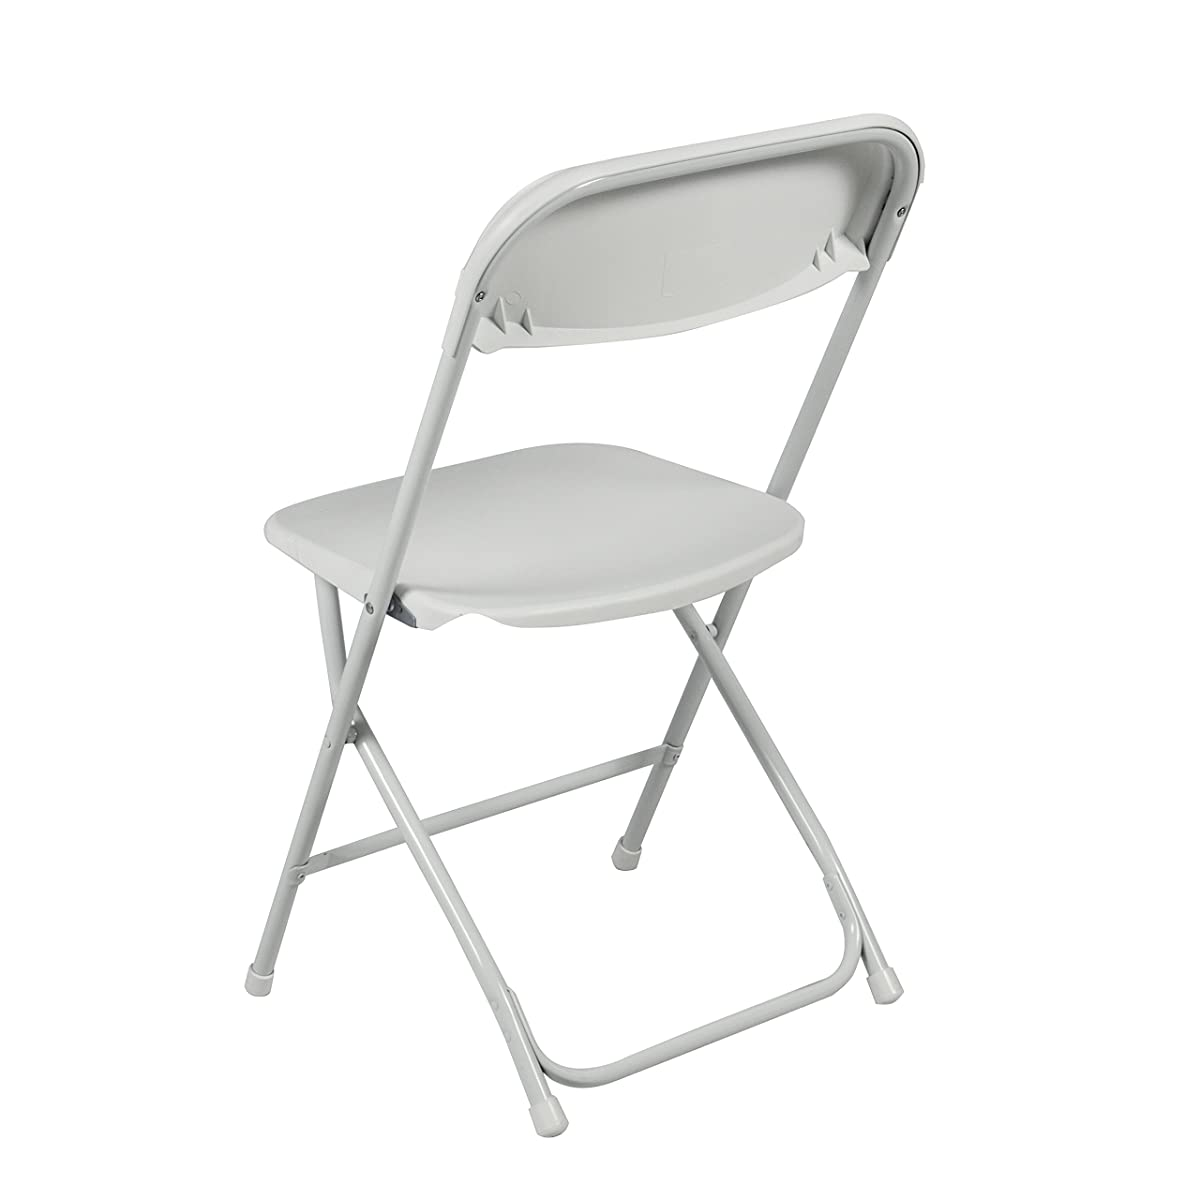 Best Choice Products 5 Commercial White Plastic Folding Chairs Stackable Wedding Party Event Chair